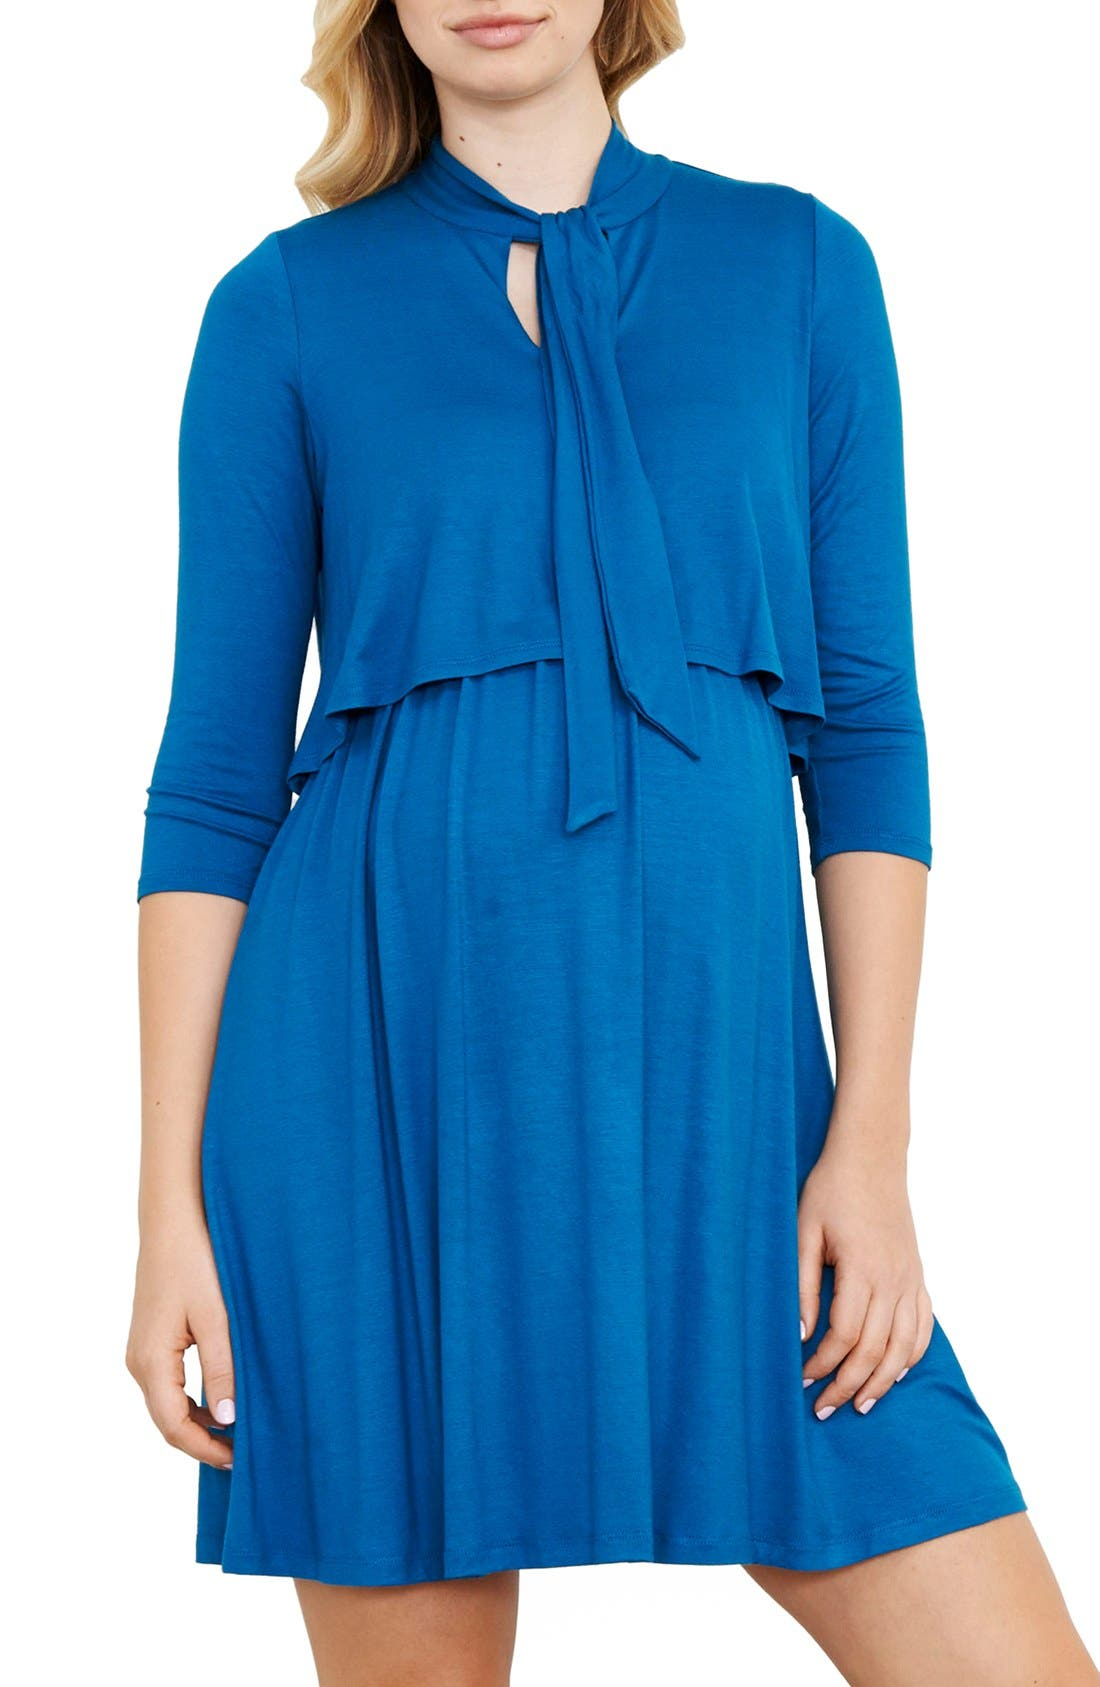 MATERNAL AMERICA Tie Neck Maternity Dress